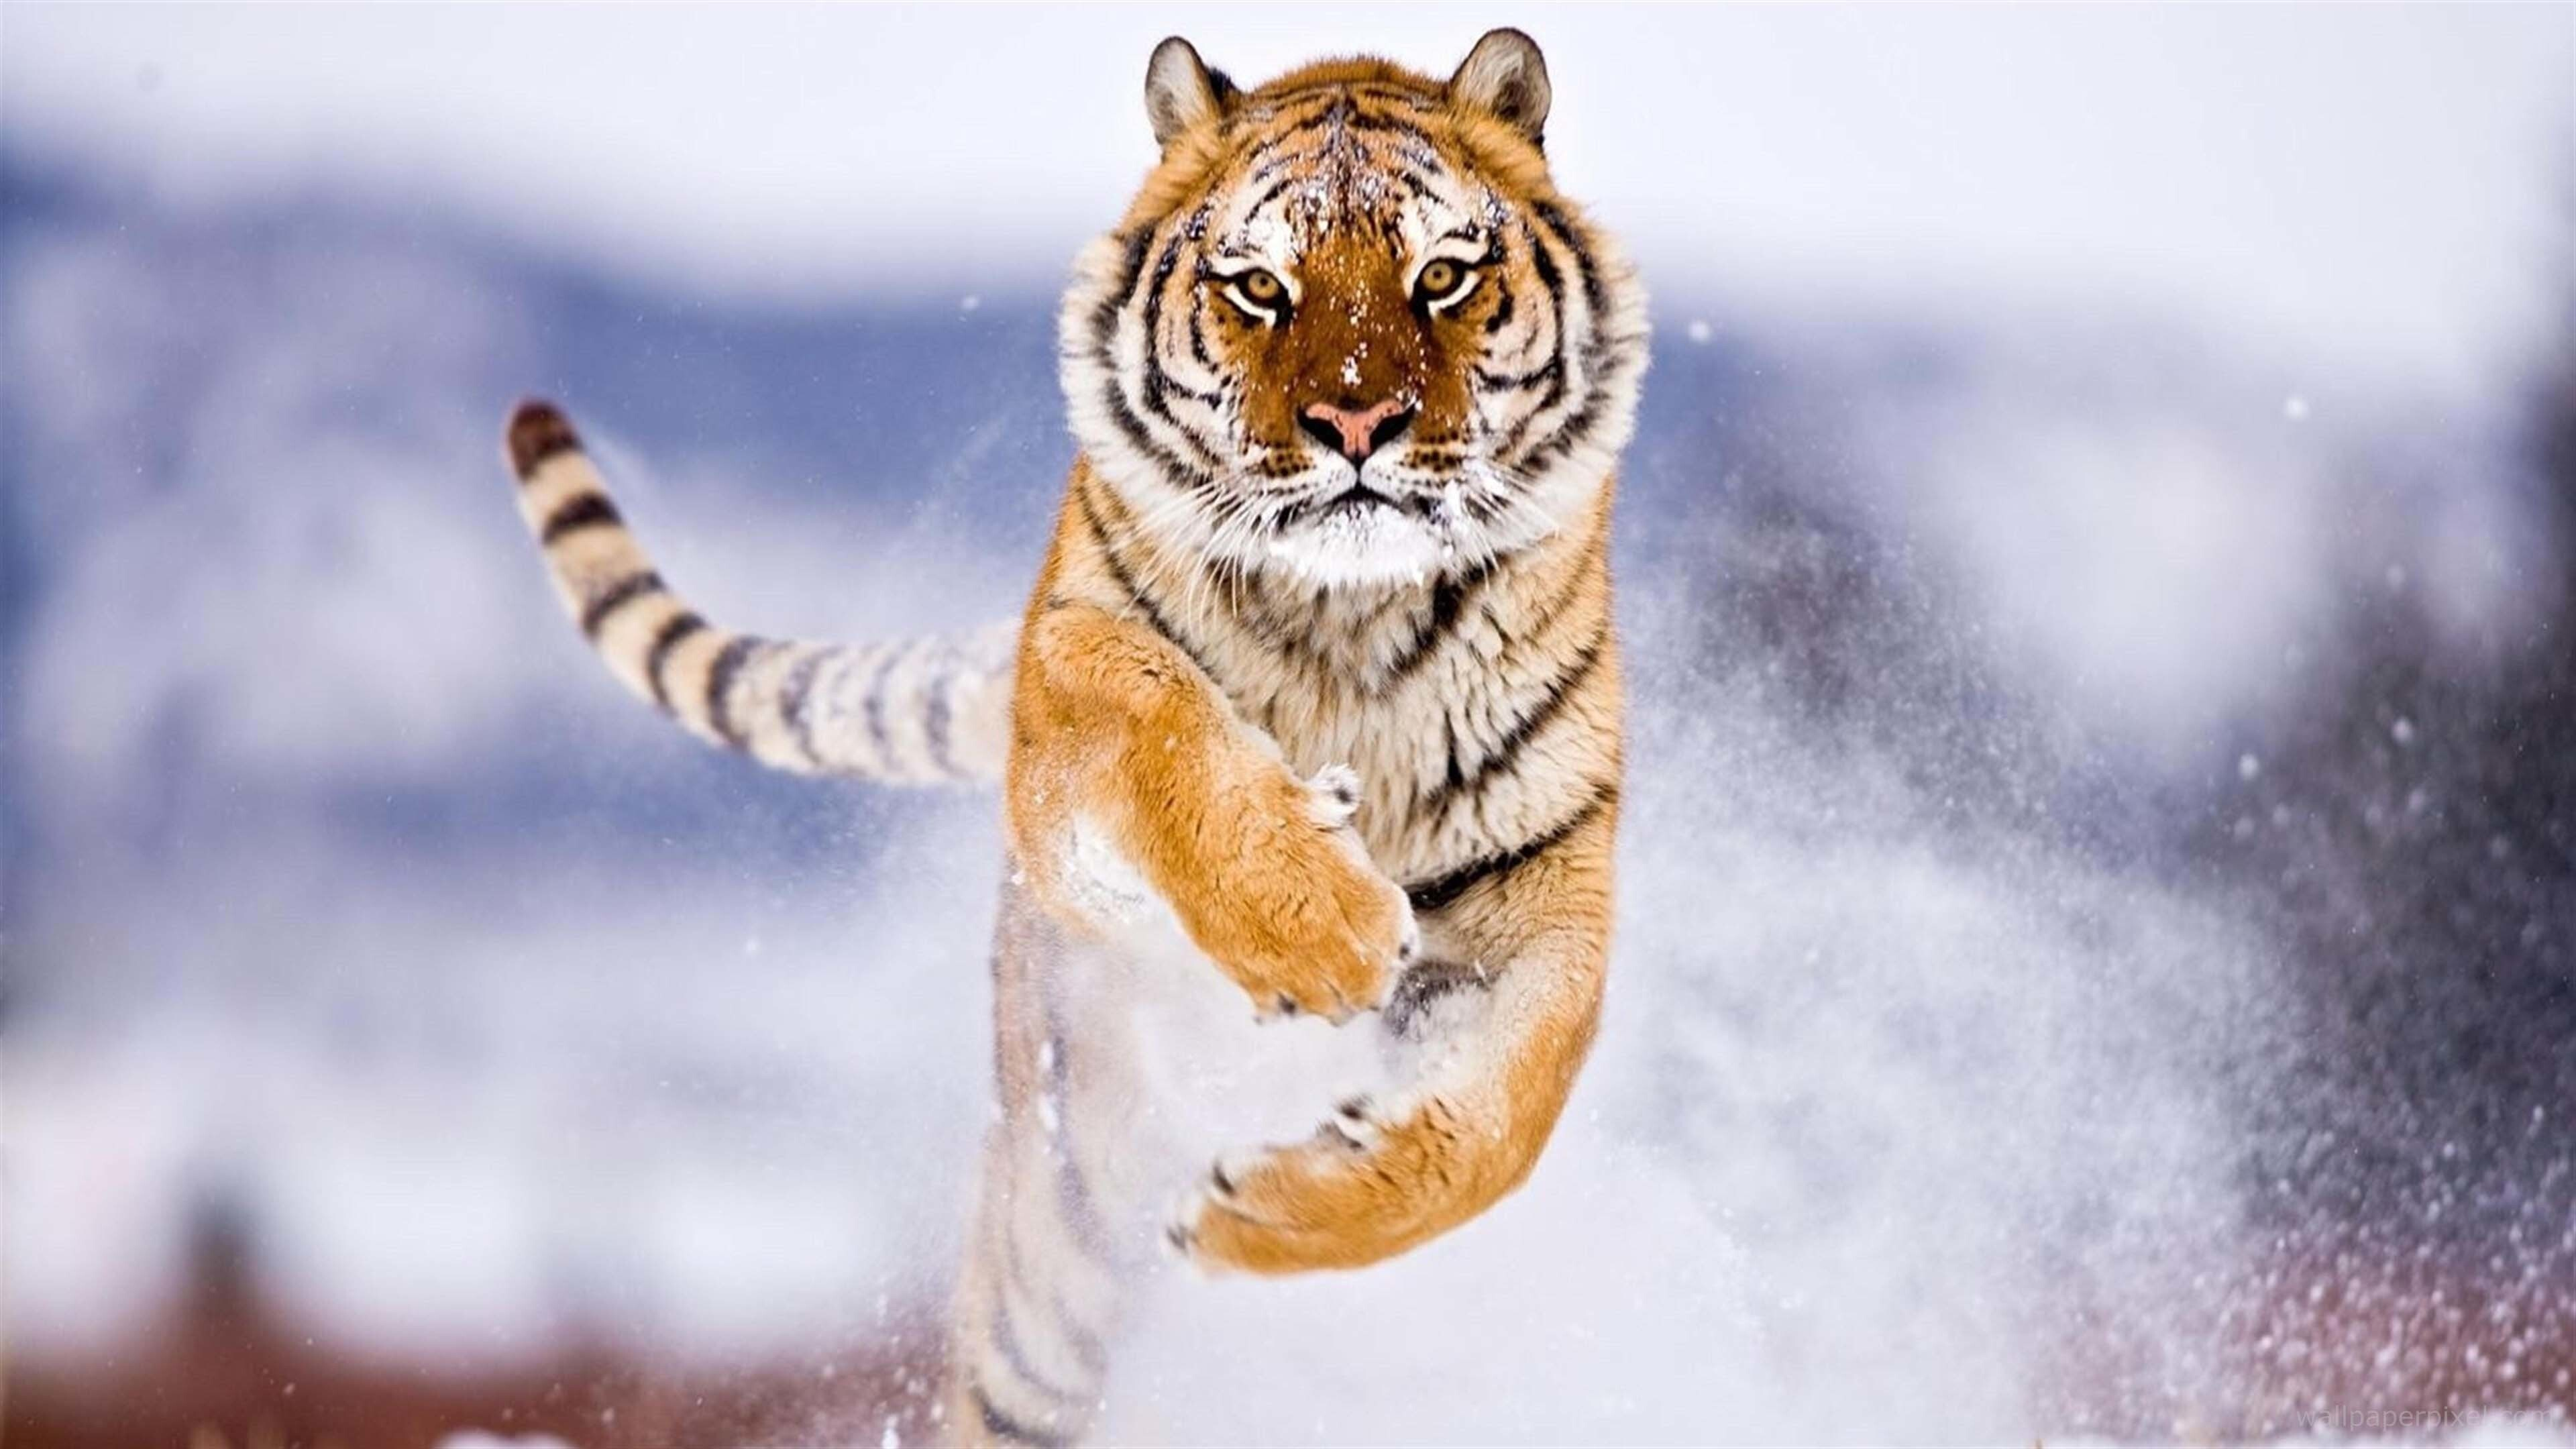 tiger running in snow | hd wallpapers